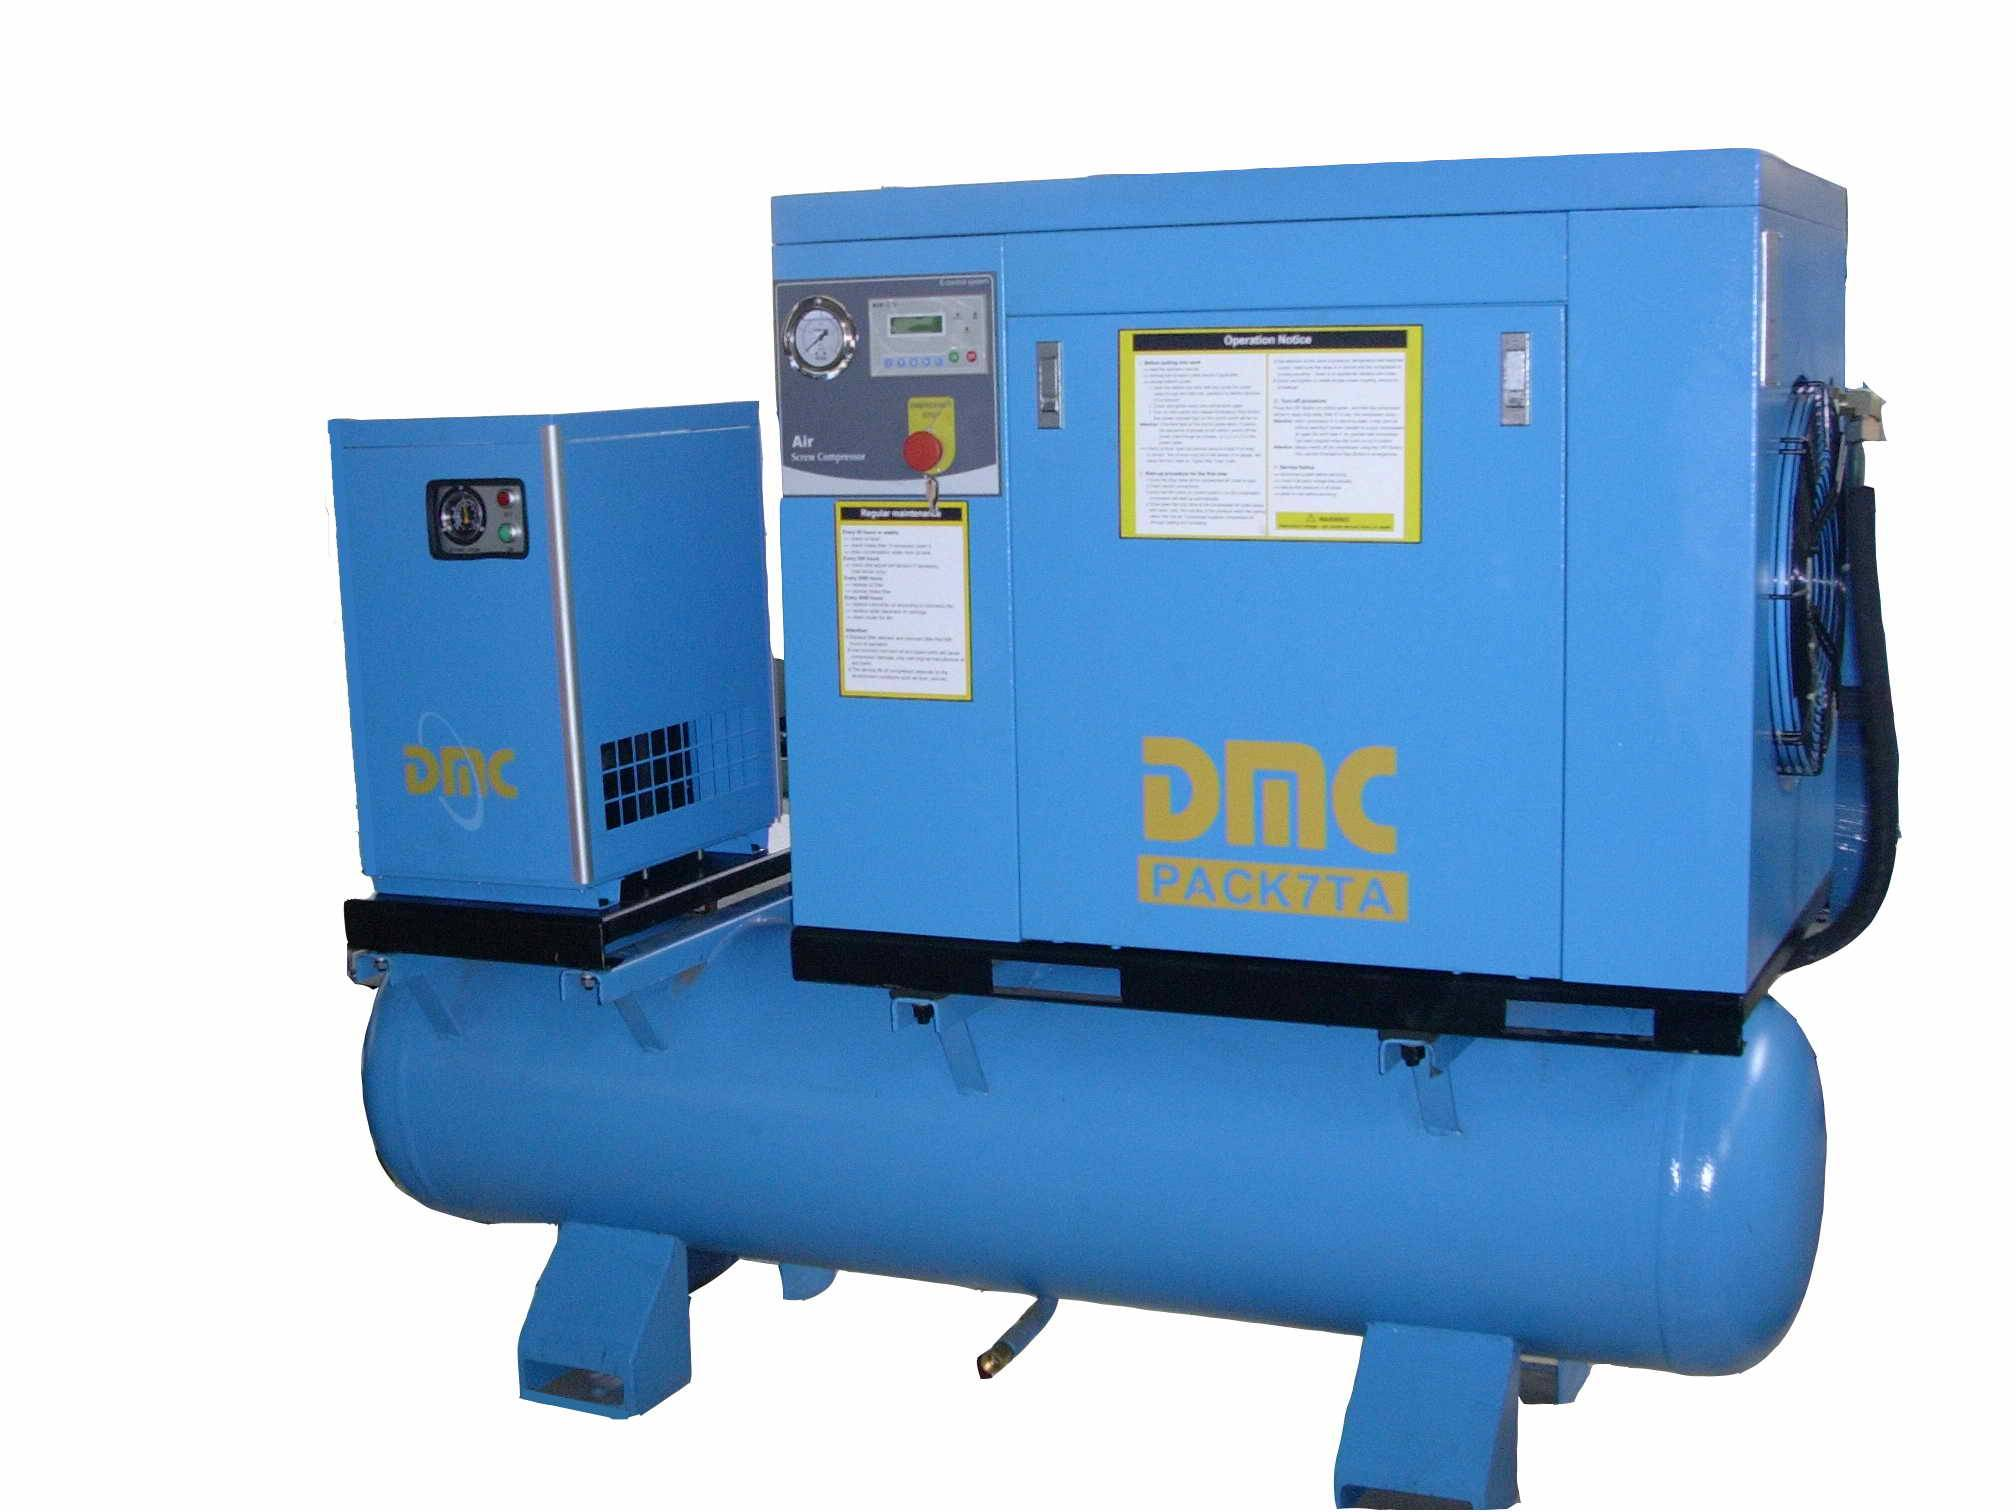 10hp screw compressor with dryer and tank